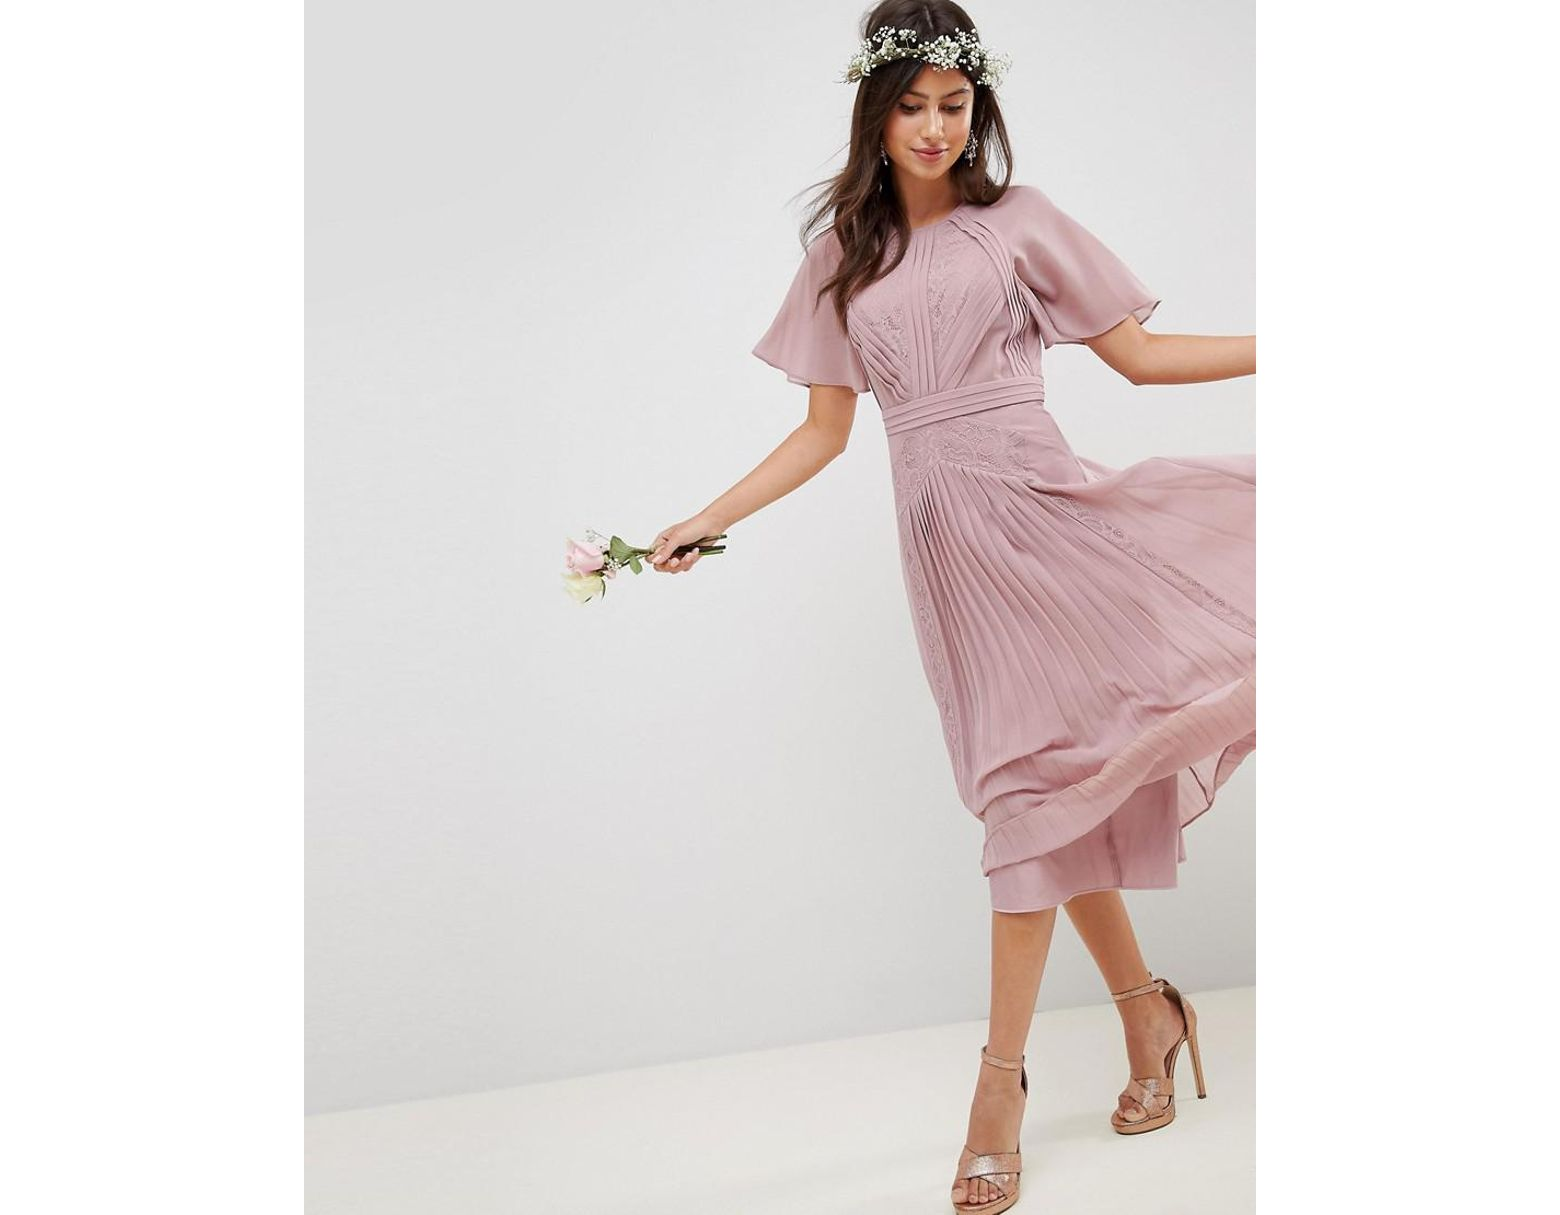 b88abd4b2e21 ASOS Pleated Paneled Short Sleeve Midi Dress With Lace Inserts in Pink -  Lyst